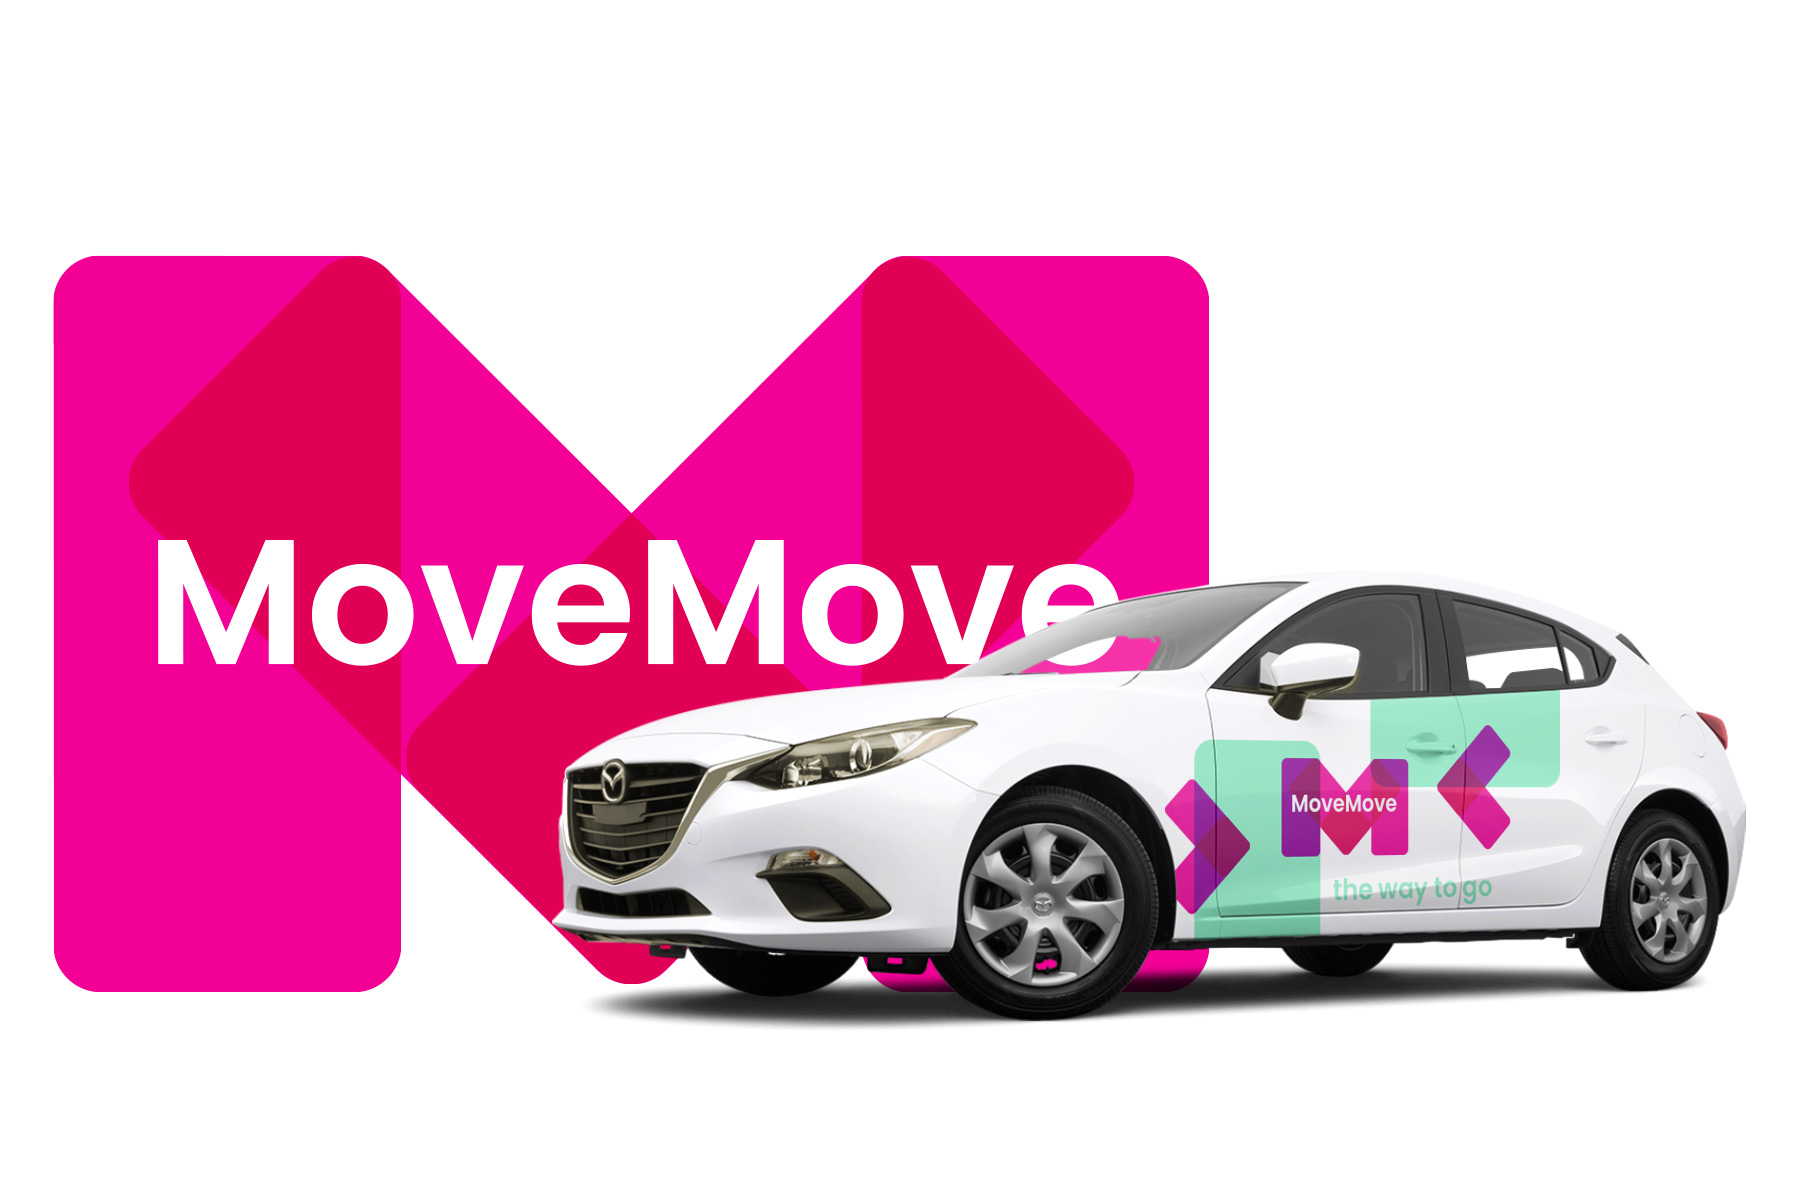 MoveMove / Dutchy Design / Branding & Design Portfolio